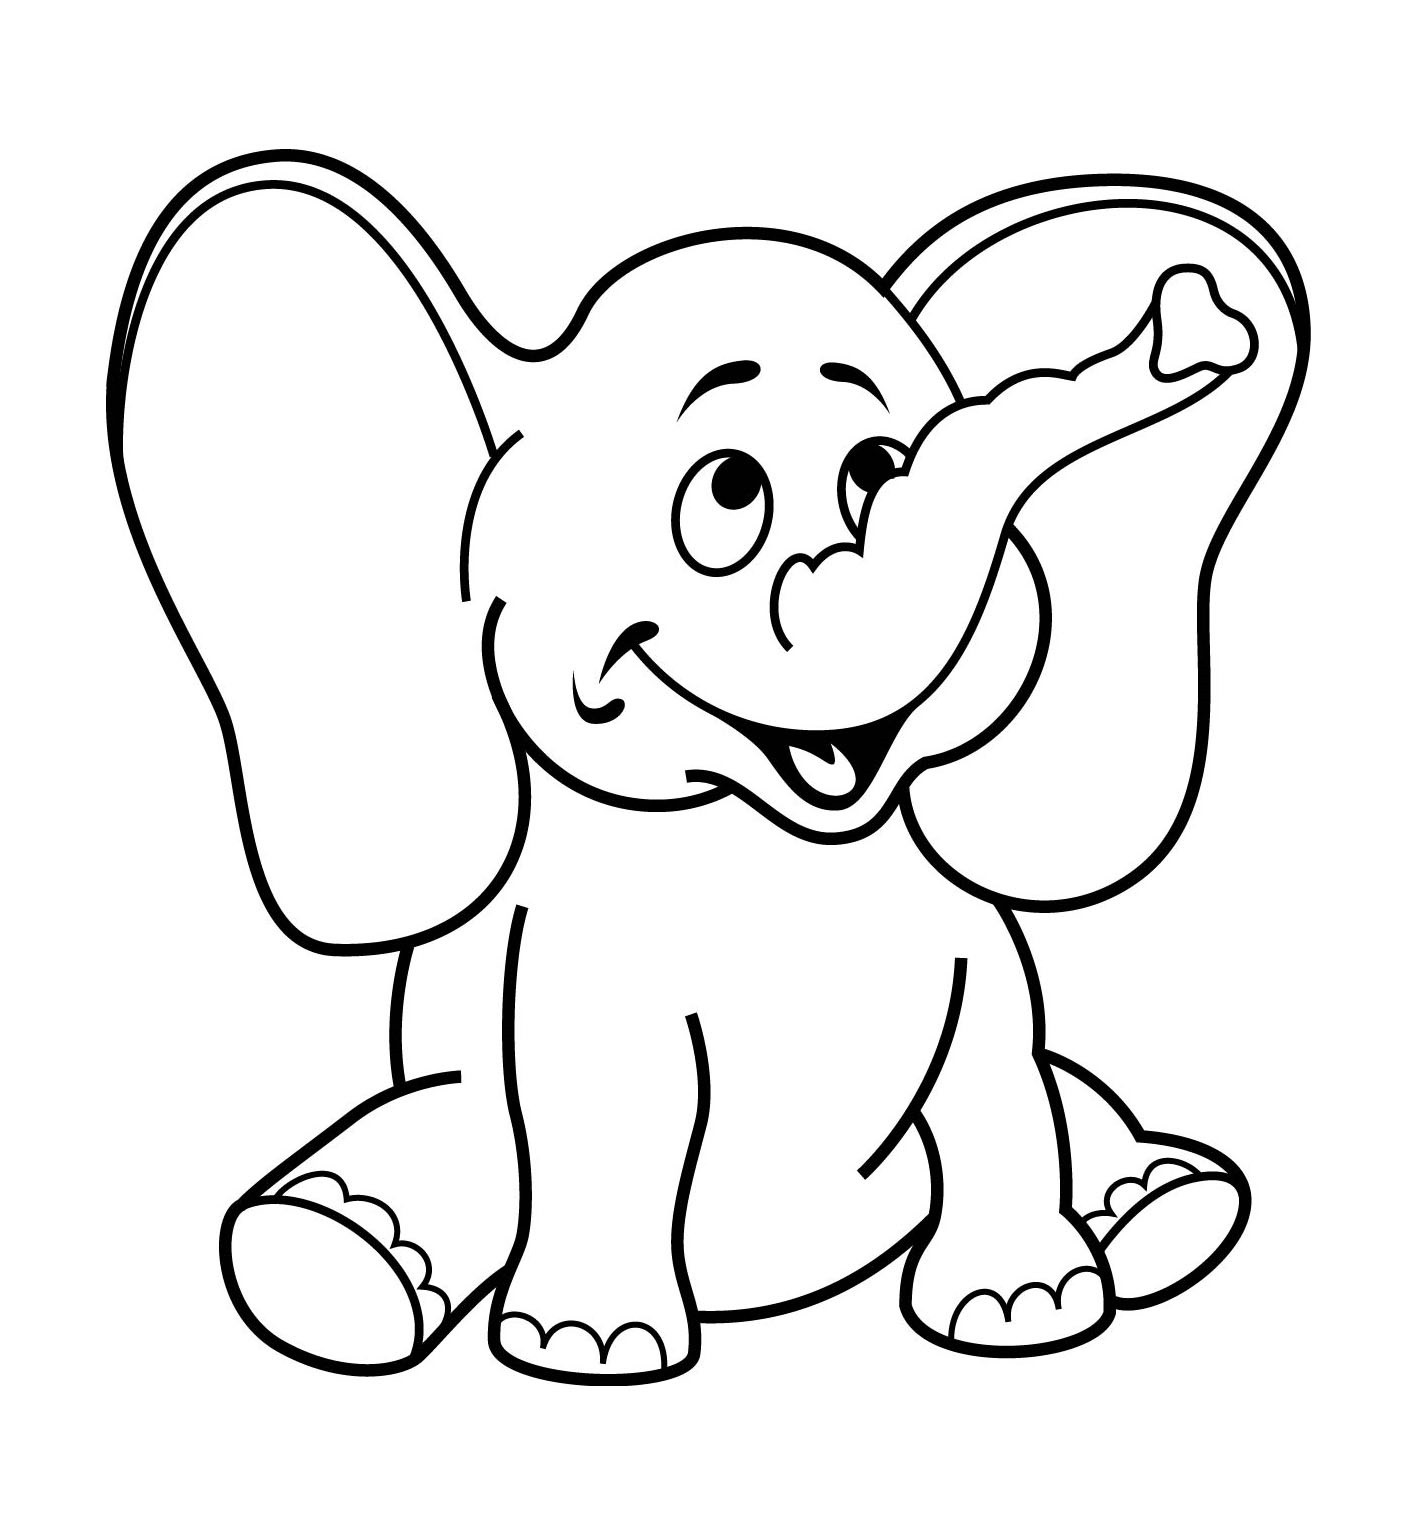 coloring pages for 8 year olds coloring pages for 10 year olds printable at getcolorings for coloring olds 8 year pages